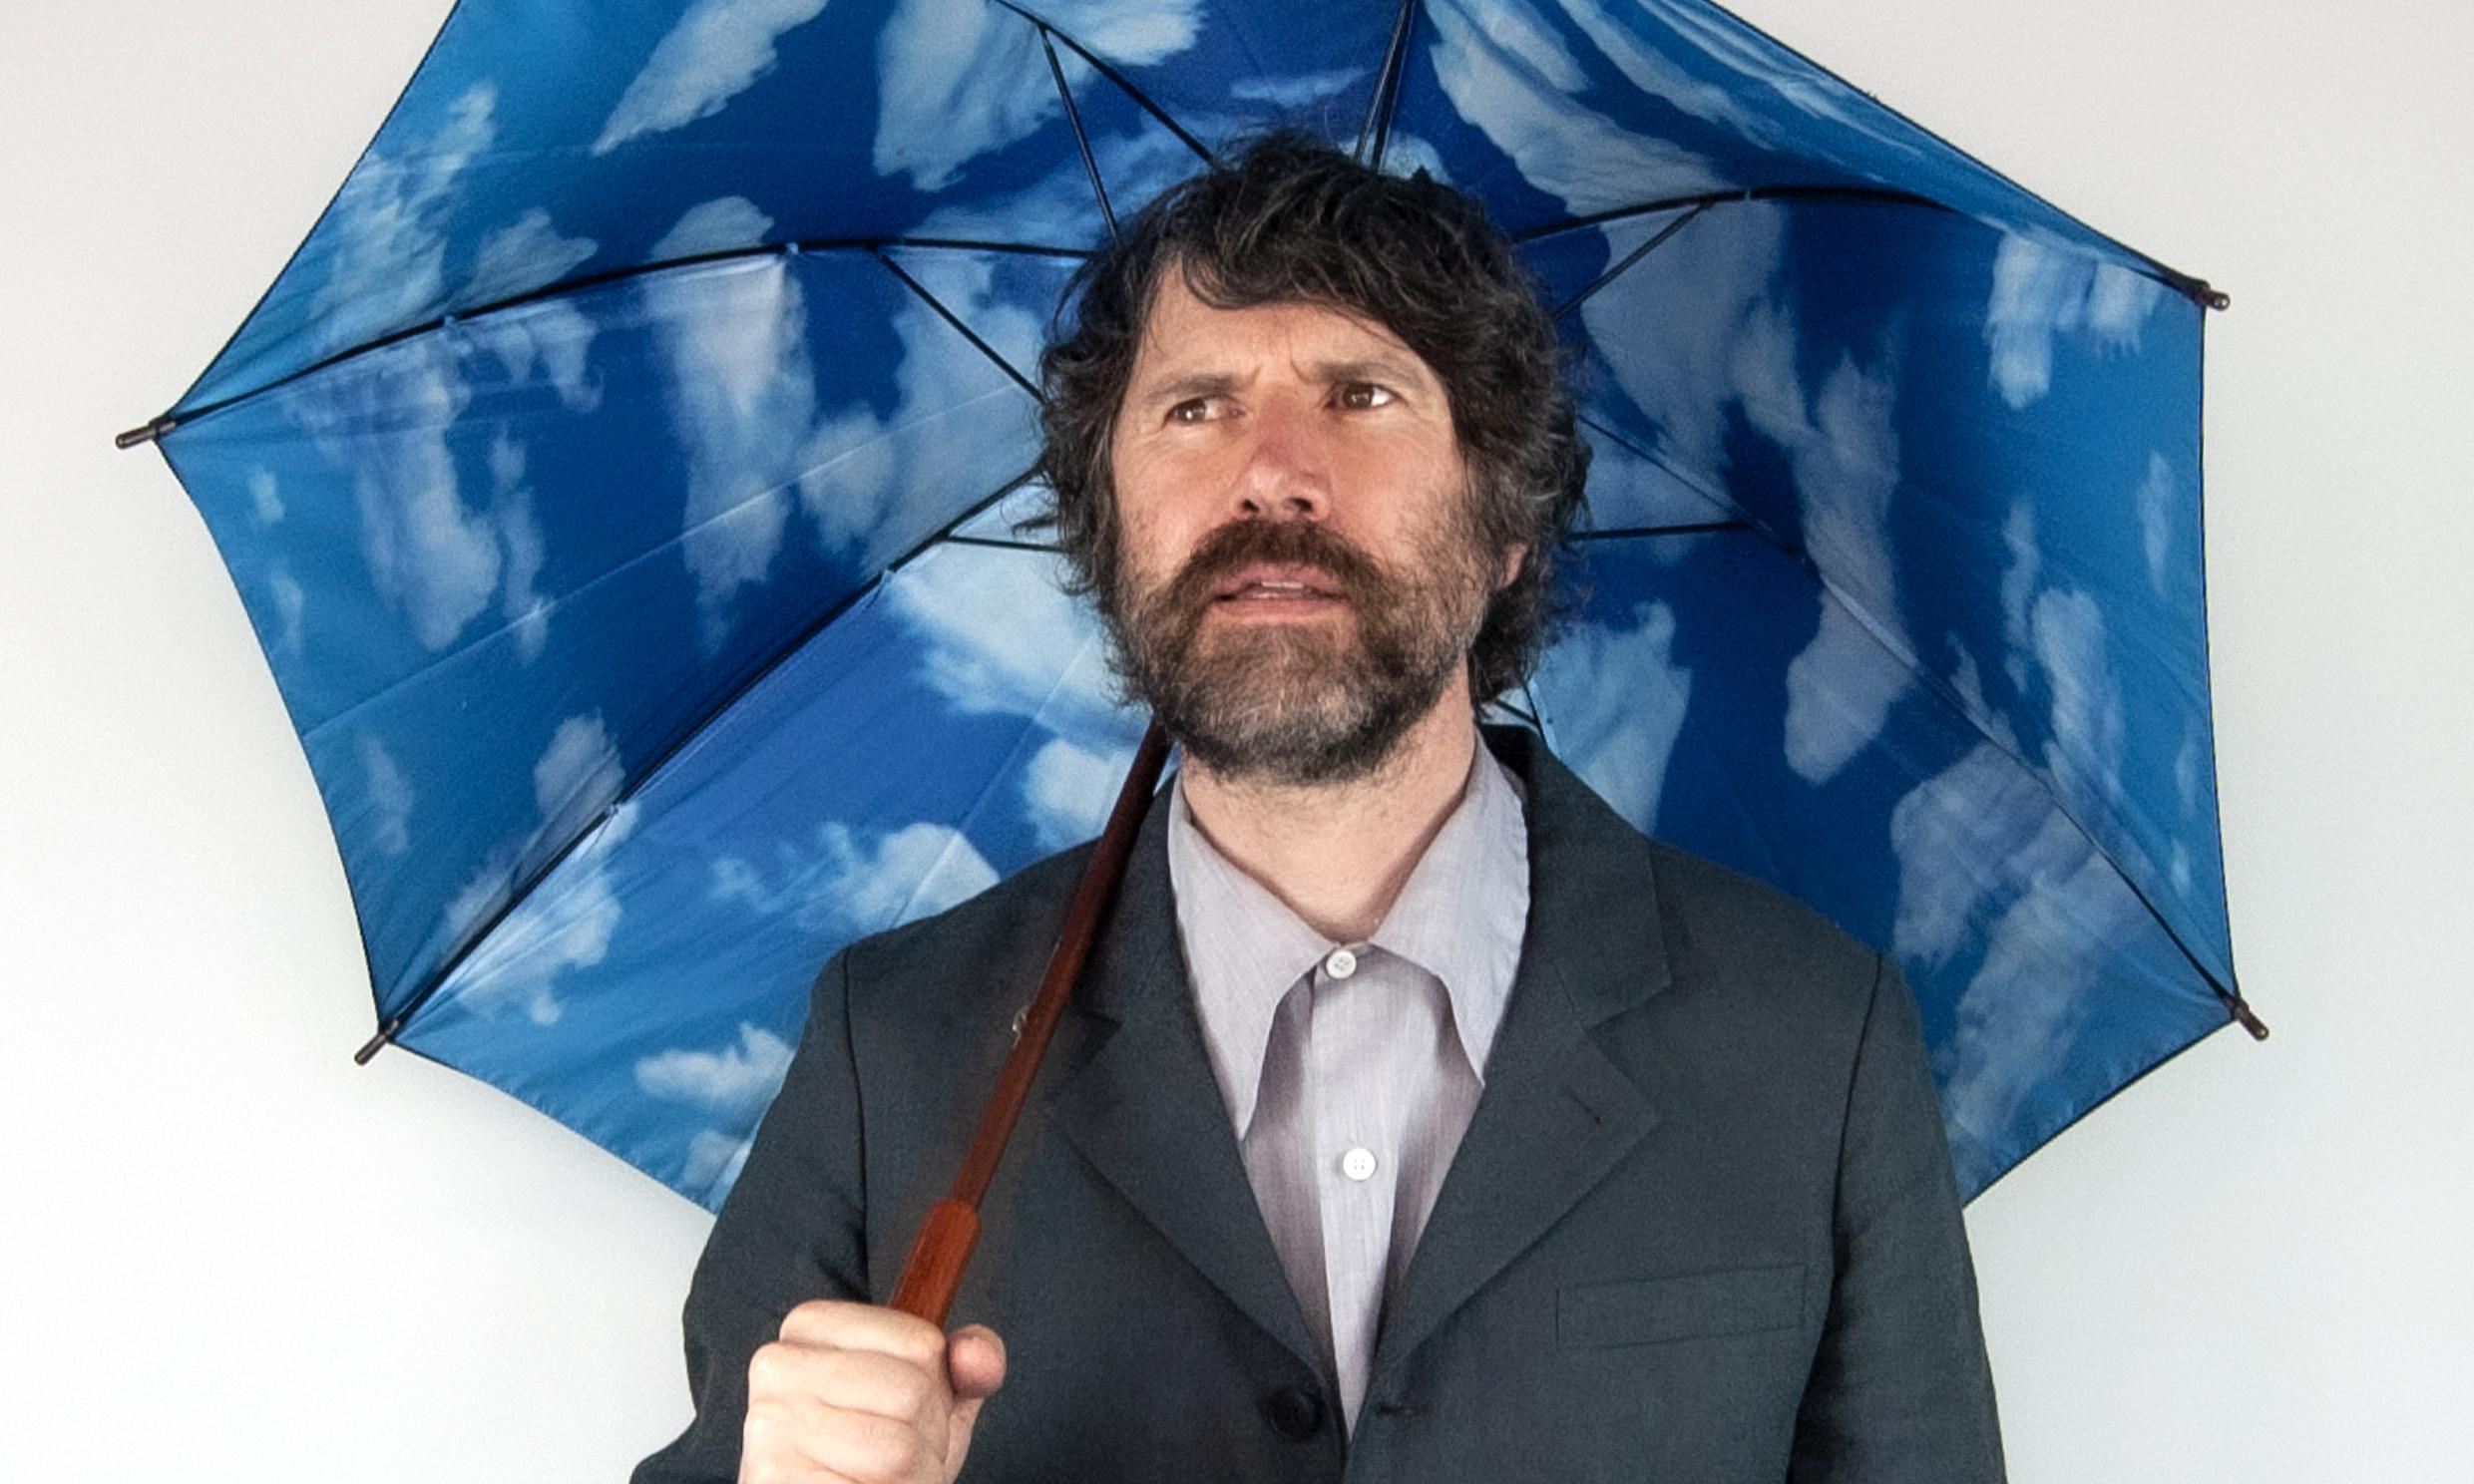 On my radar: Gruff Rhys's cultural highlights